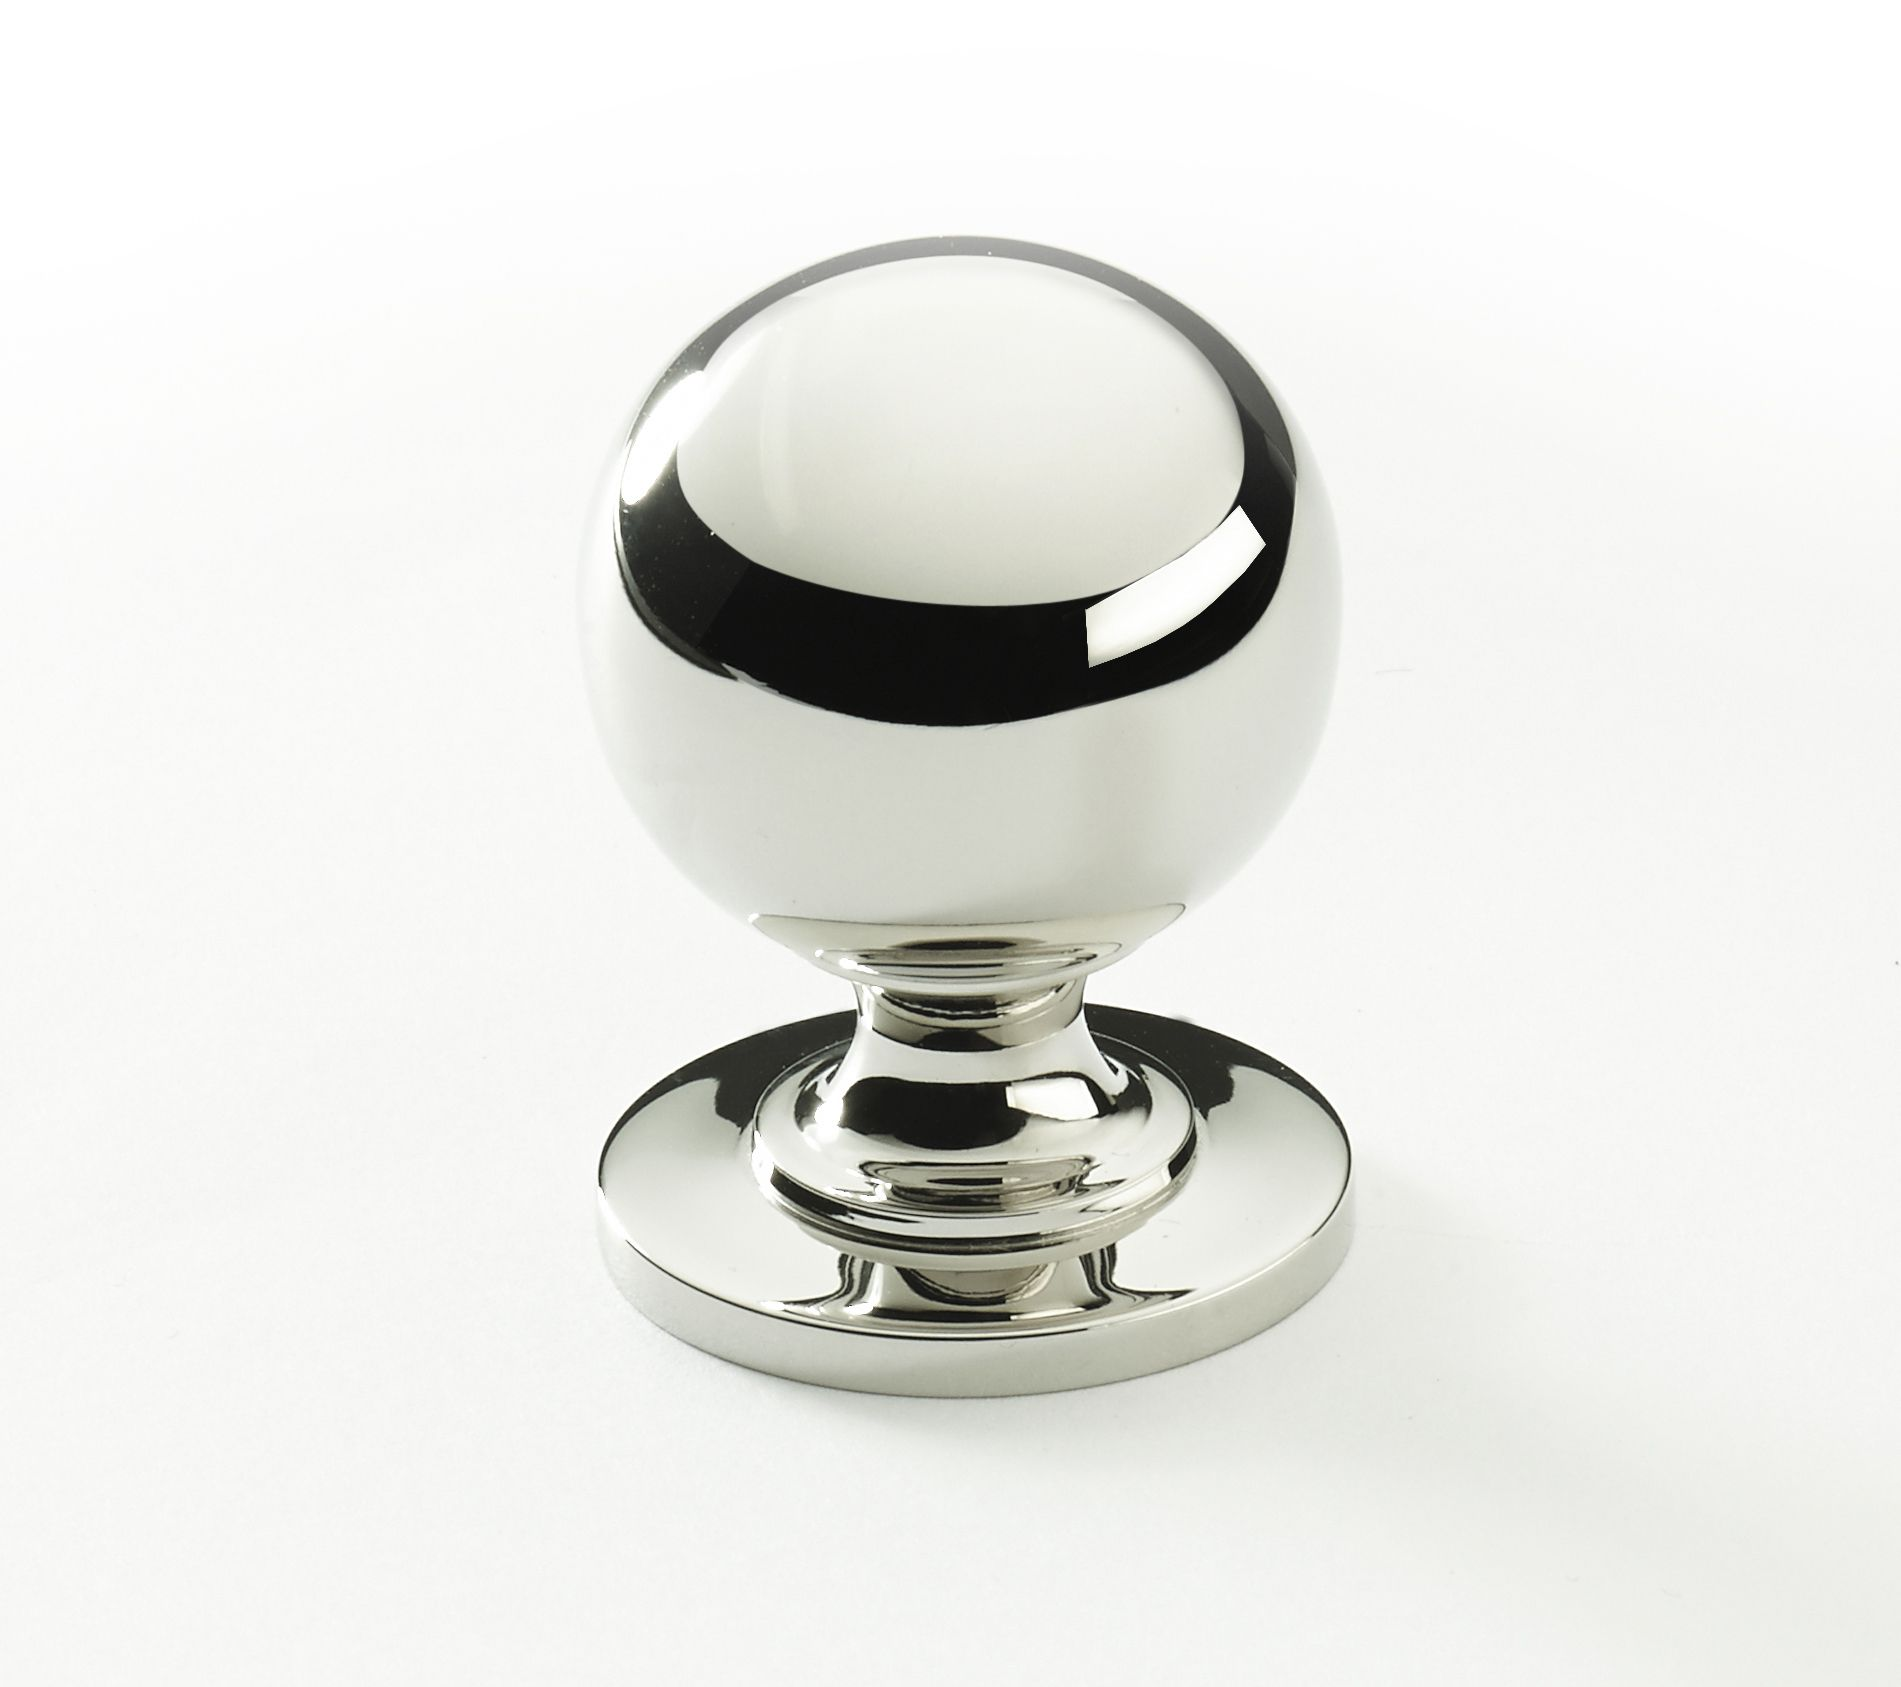 cotswold knob tom howley made by armac martin kitchens